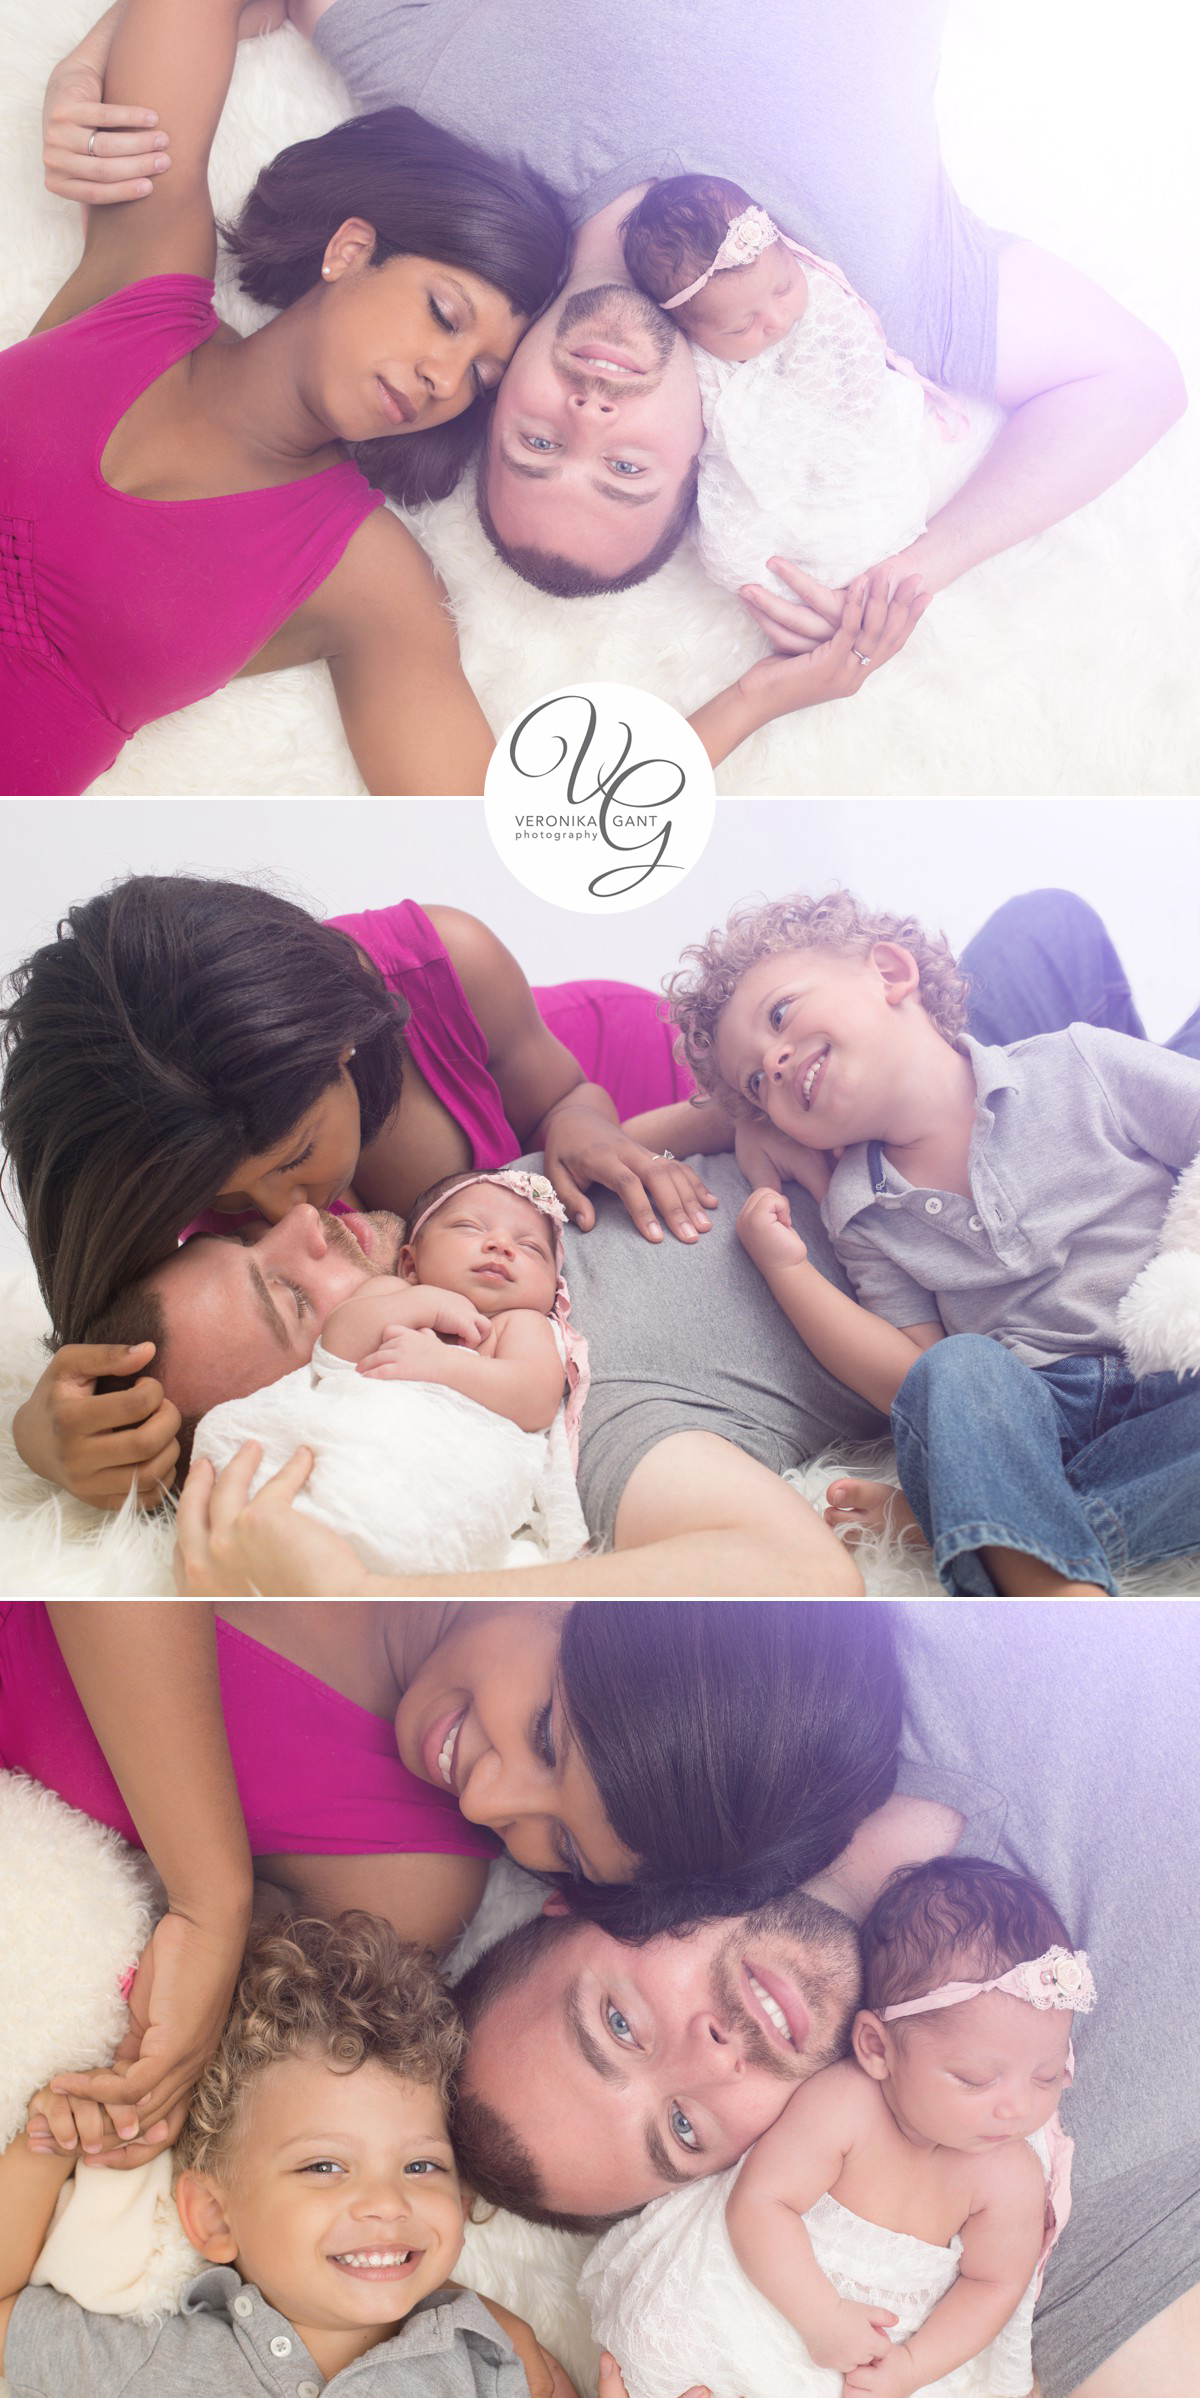 San-Antonio-Newborn-Photography-Ideas-by-Veronika-Gant-Christmas-Theme-07